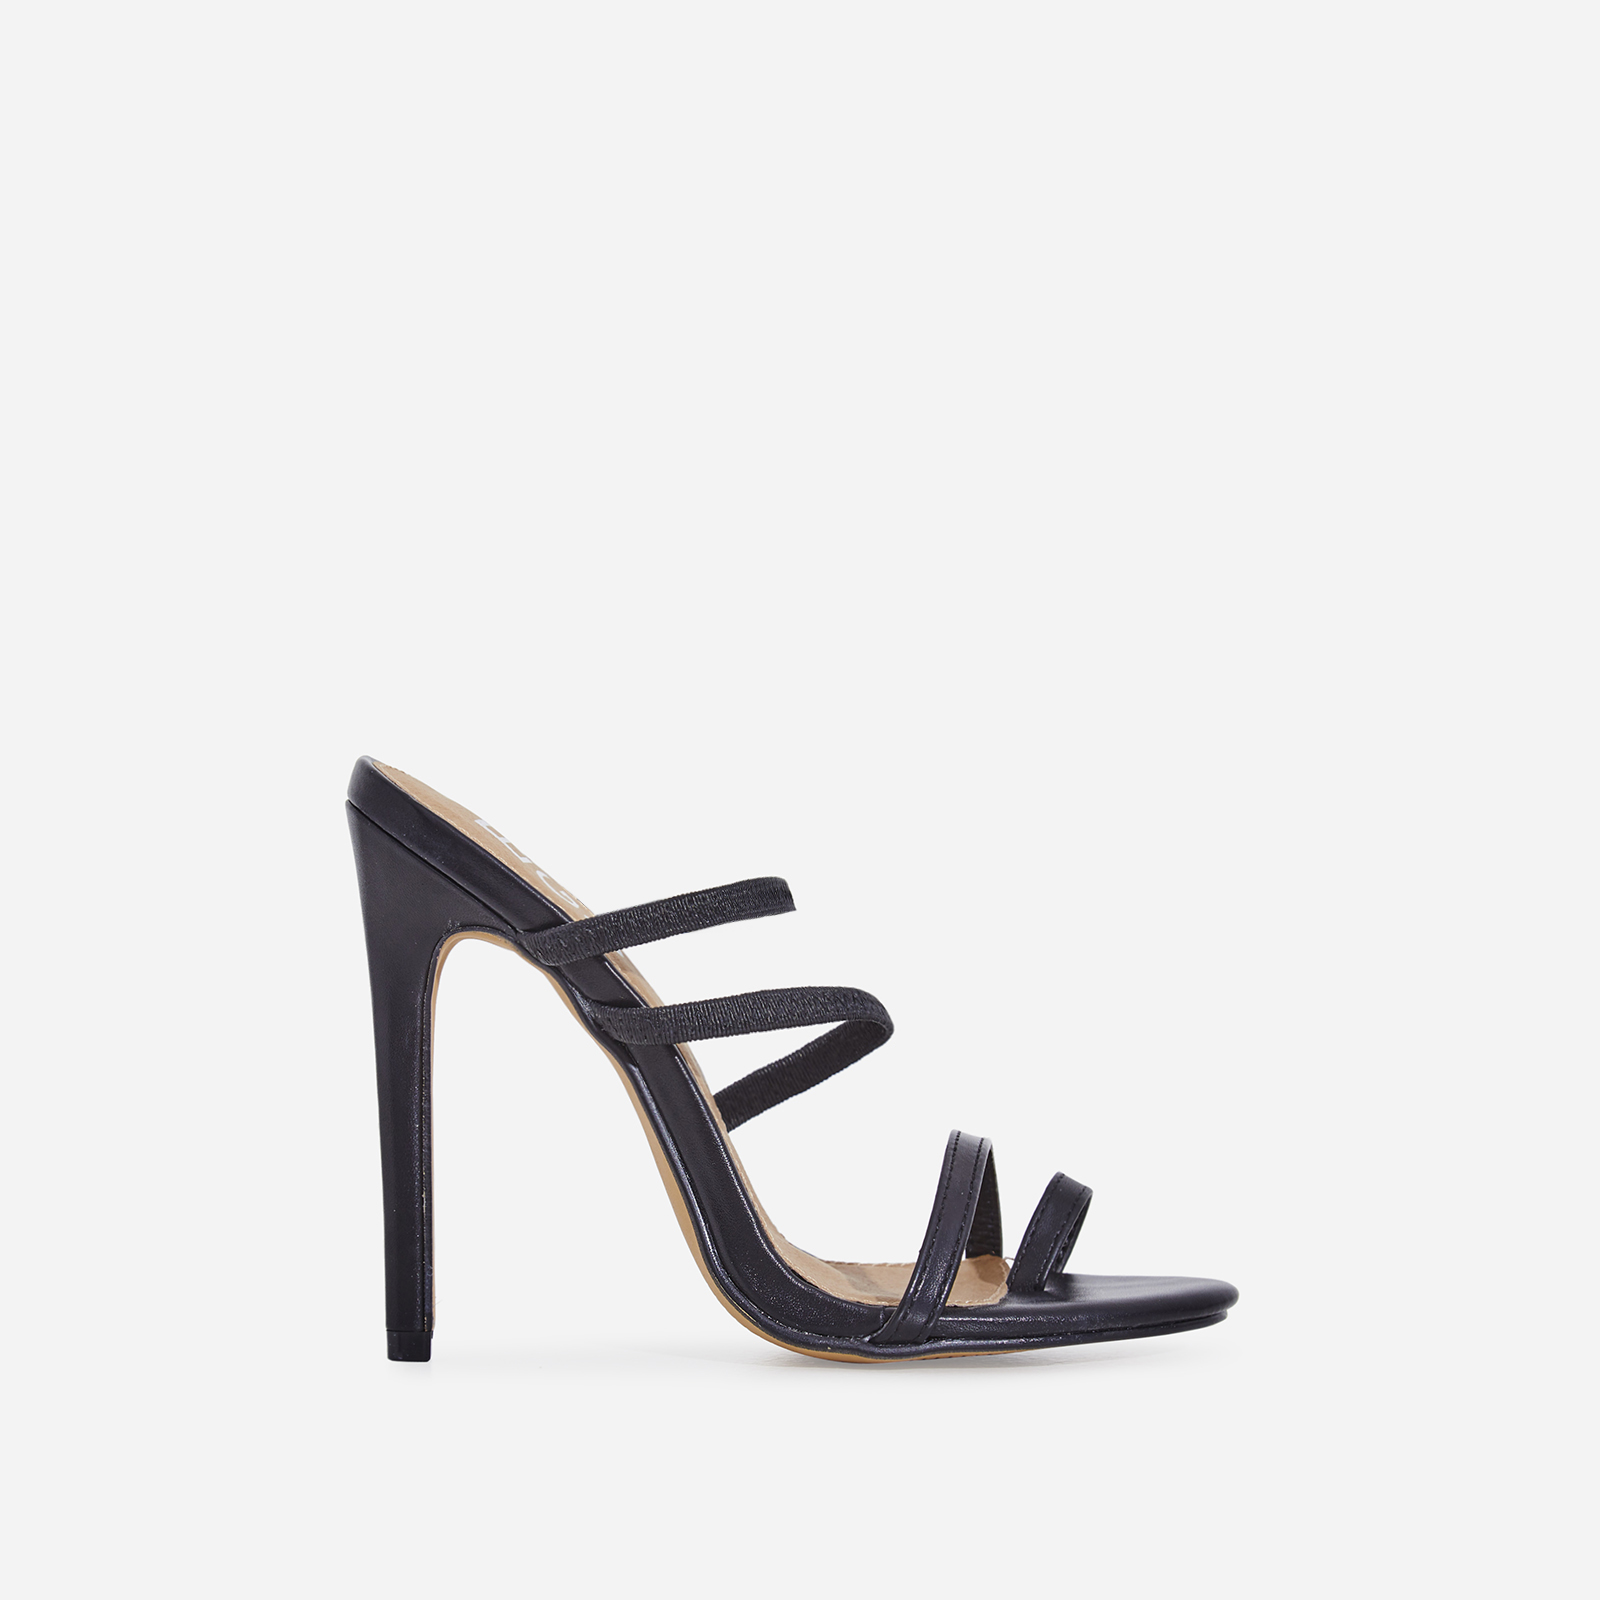 Letty Toe Strap Heel Mule In Black Faux Leather